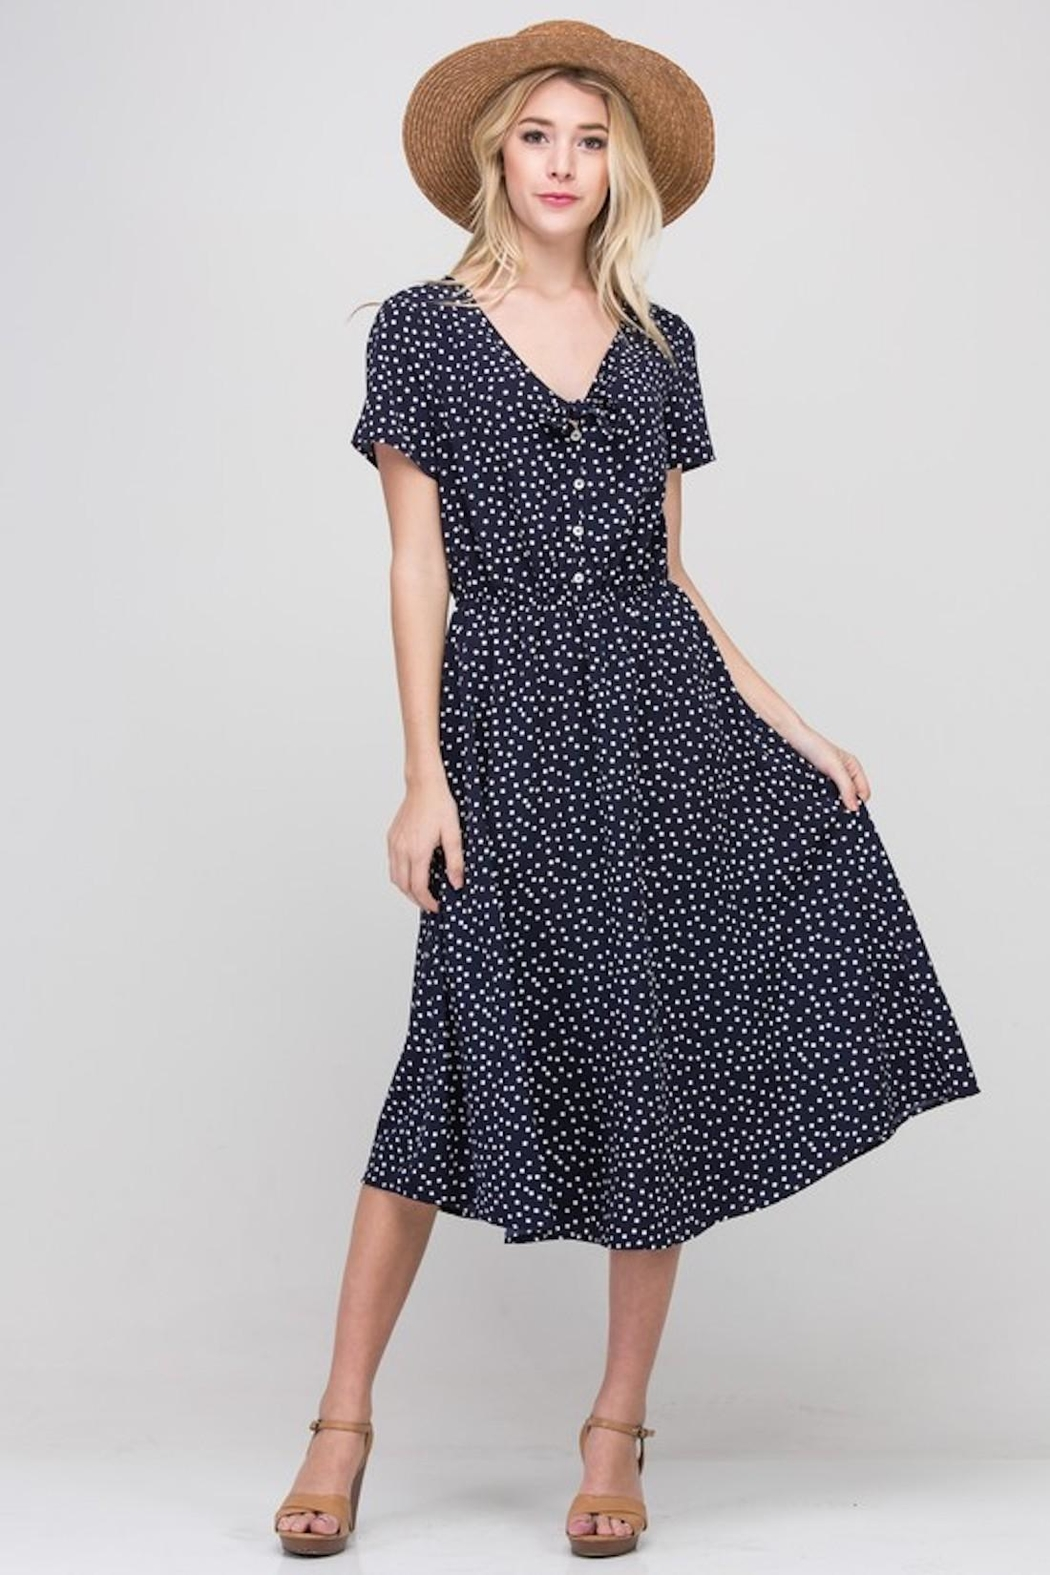 Les Amis Navy Dainty-Dots Dress - Main Image